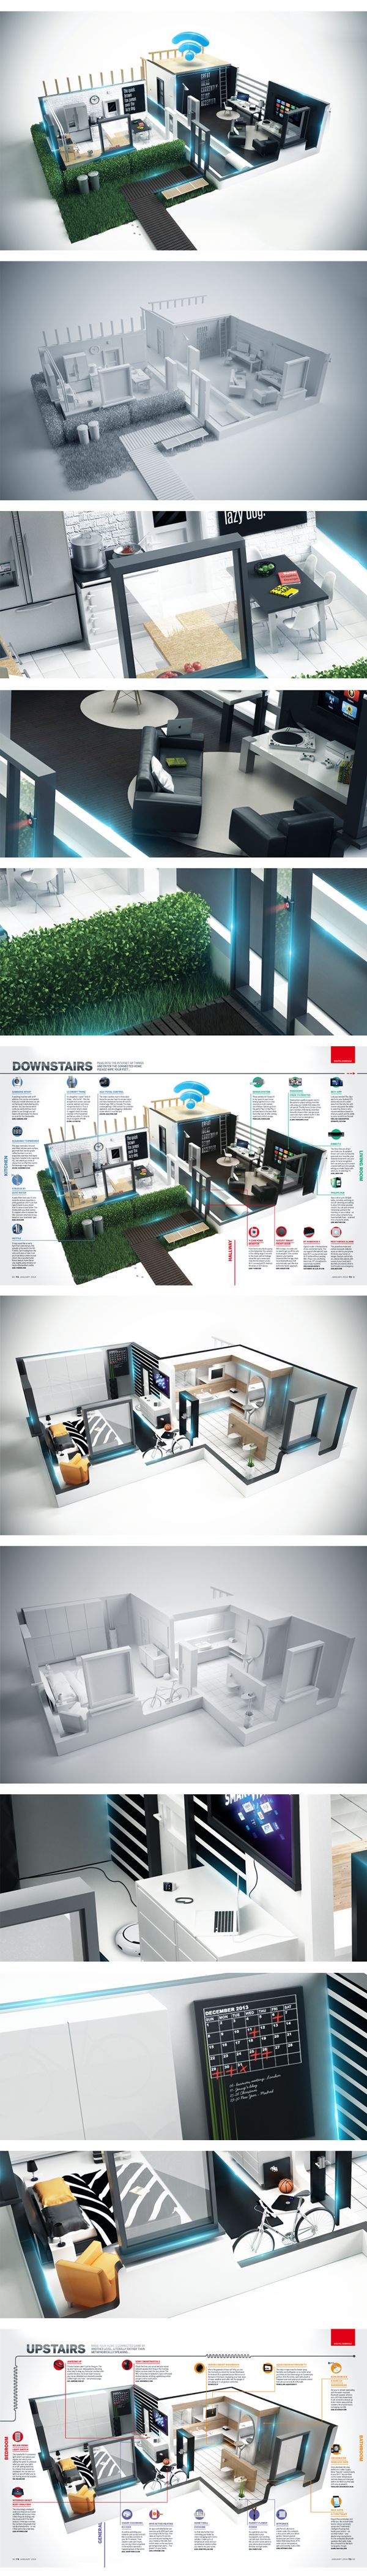 https://www.behance.net/gallery/13428753/T3-The-Connected-Home